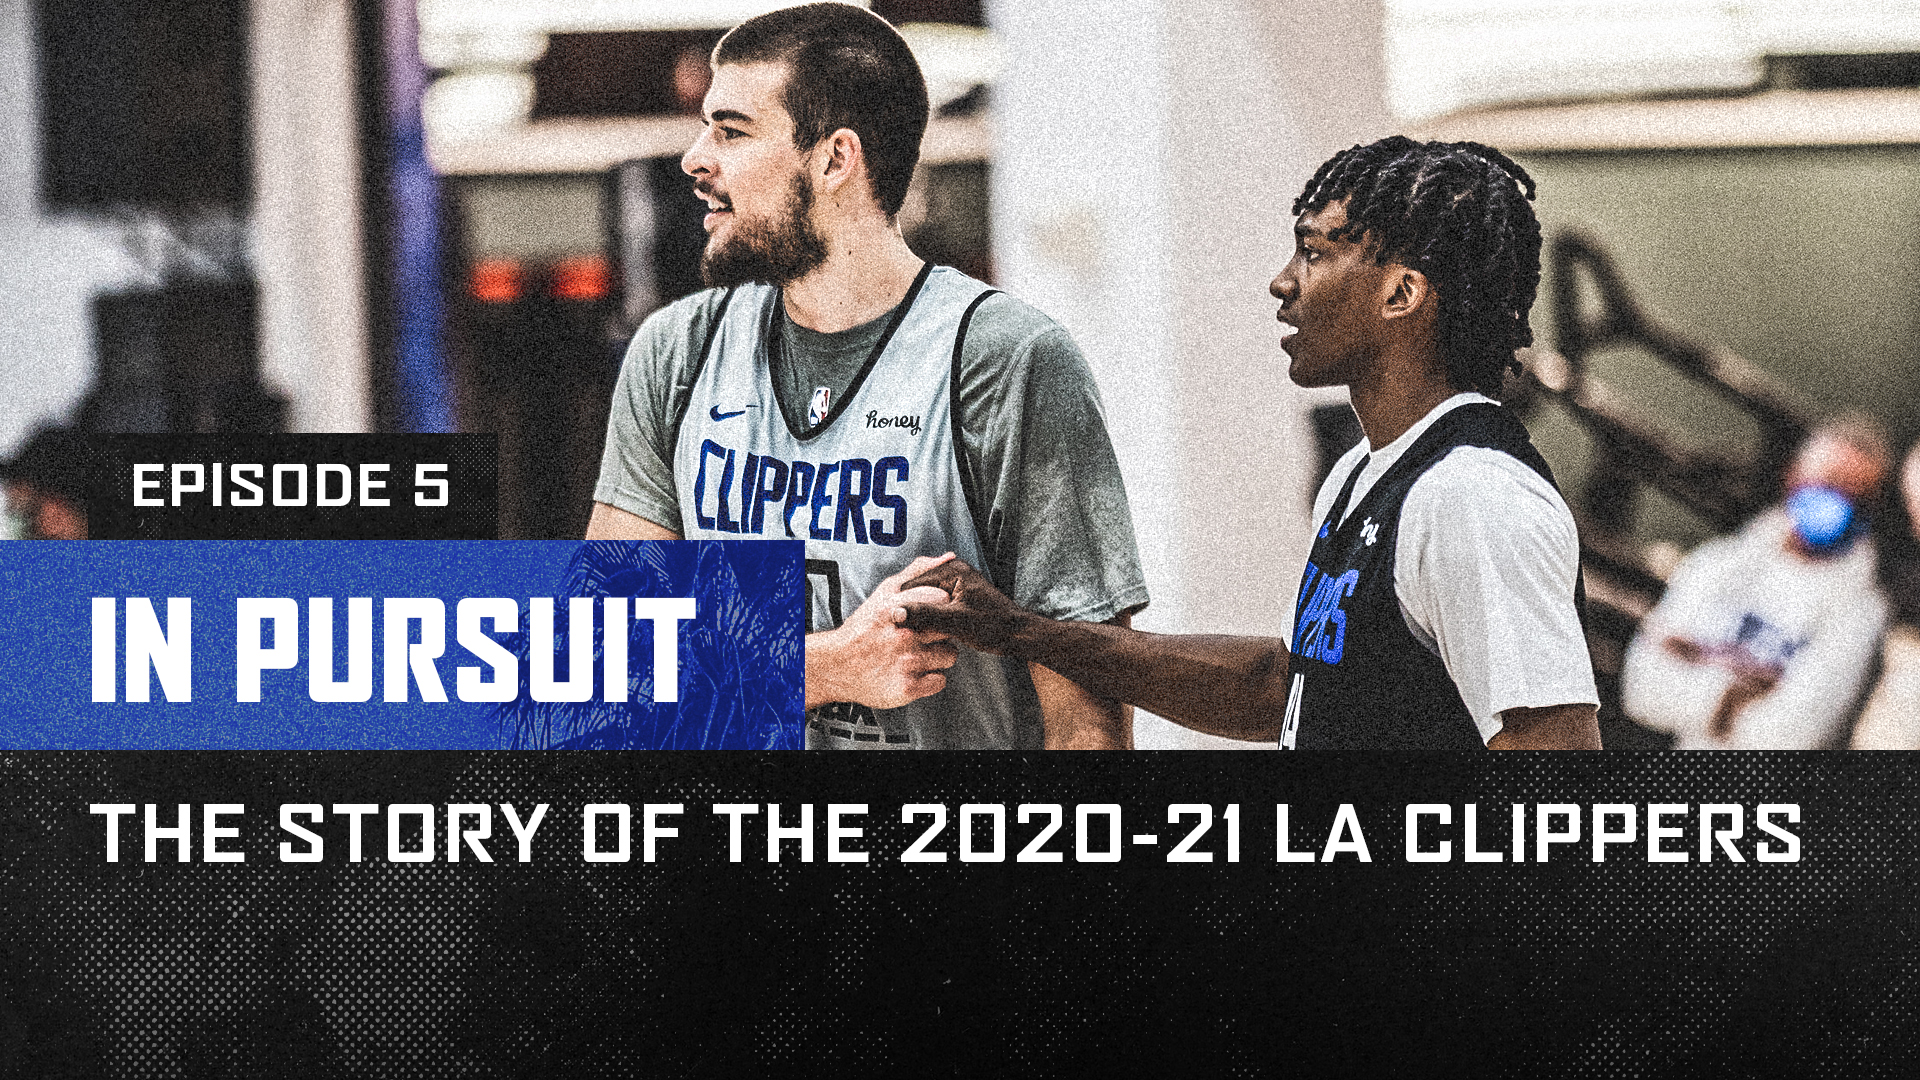 In Pursuit   The Story of the 2020-21 LA Clippers   Episode 5